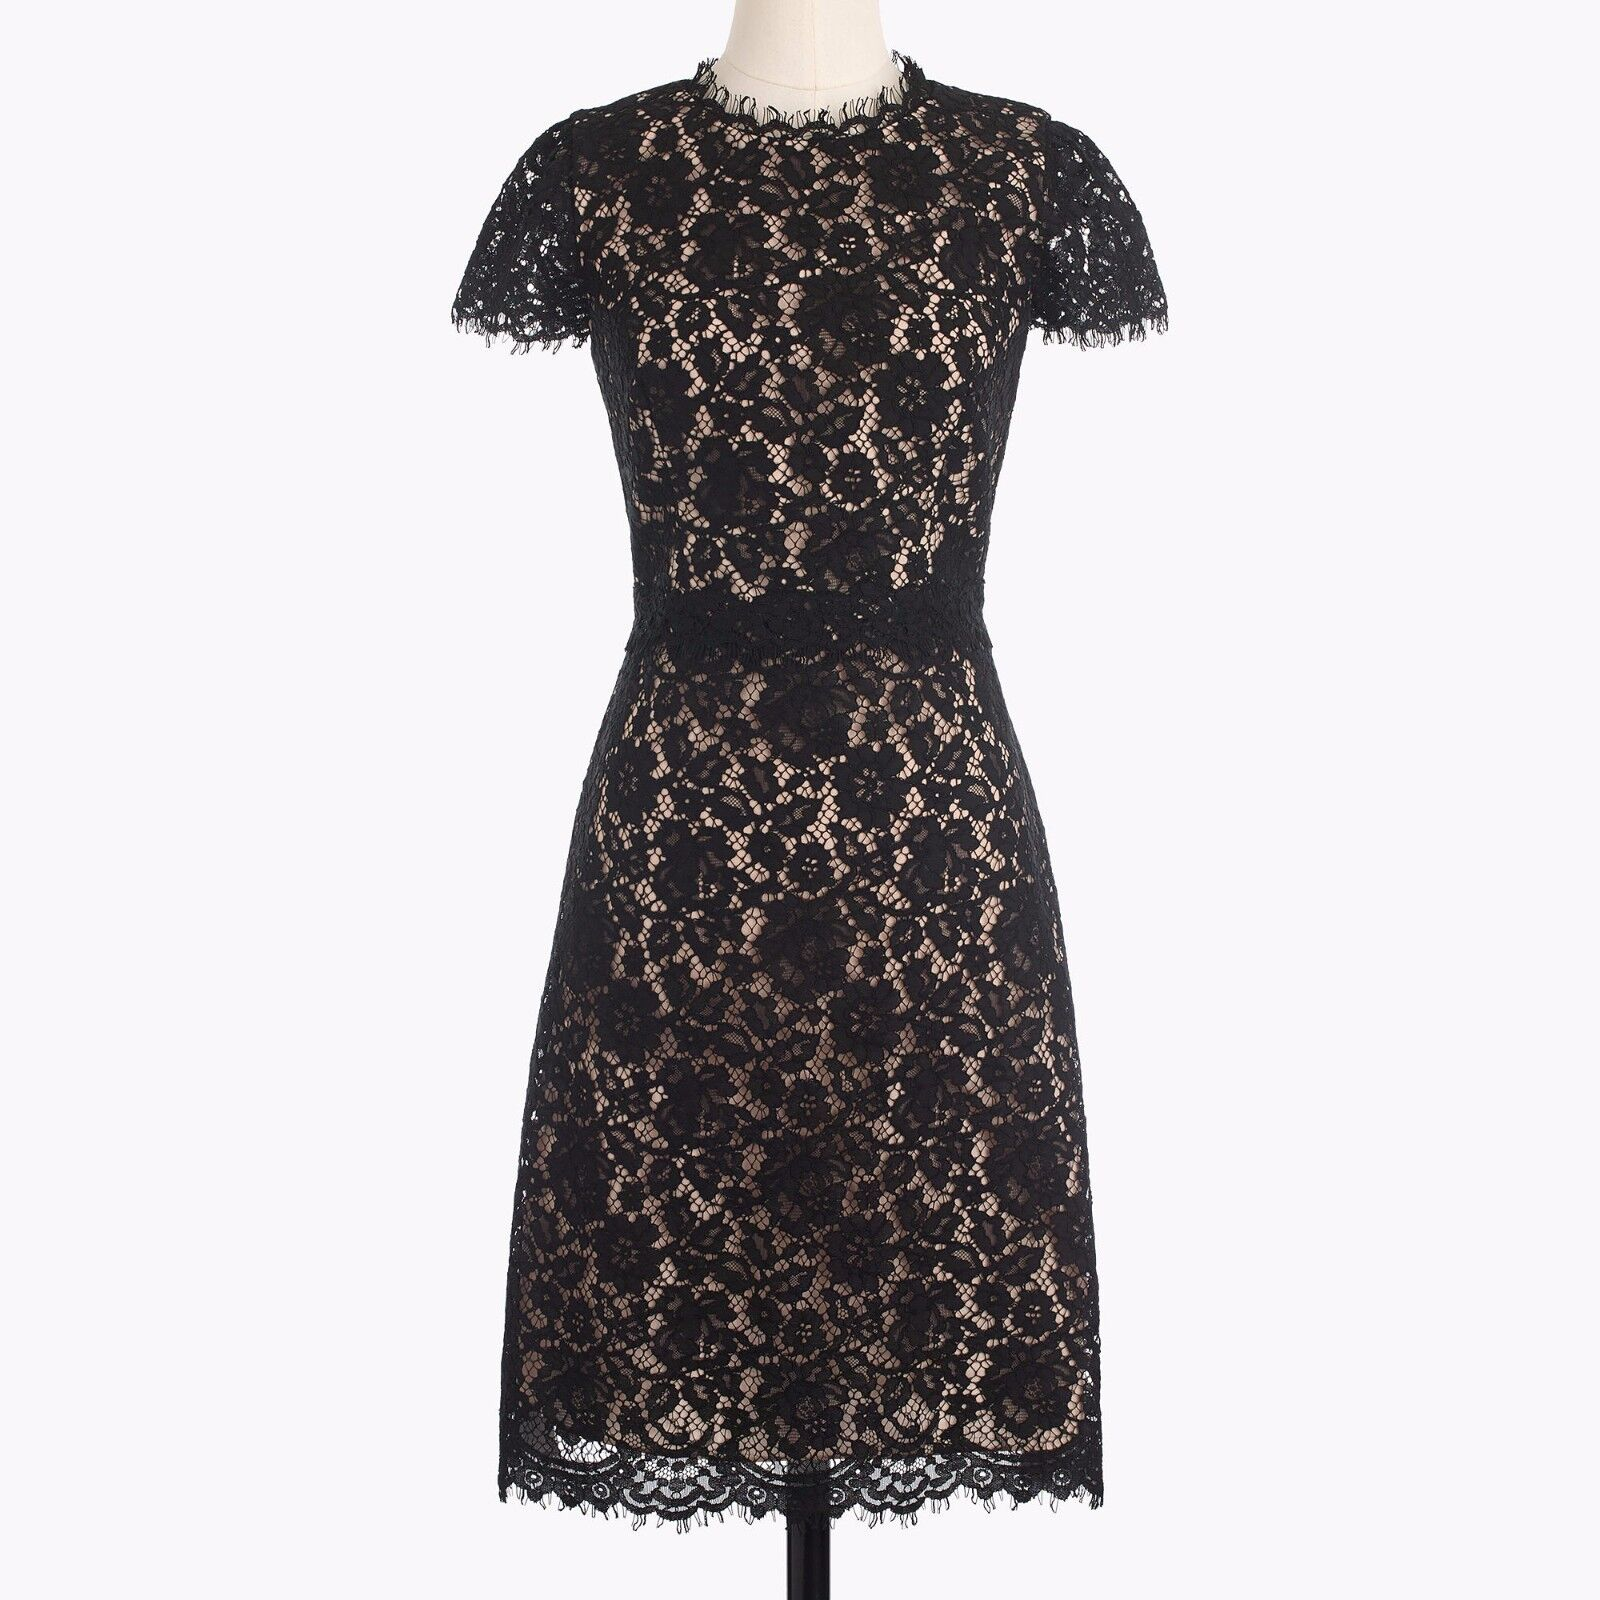 J.Crew Collection lace lace lace fit-and-flare dress - Size 0, 2, 4 NWT  220 618ef7